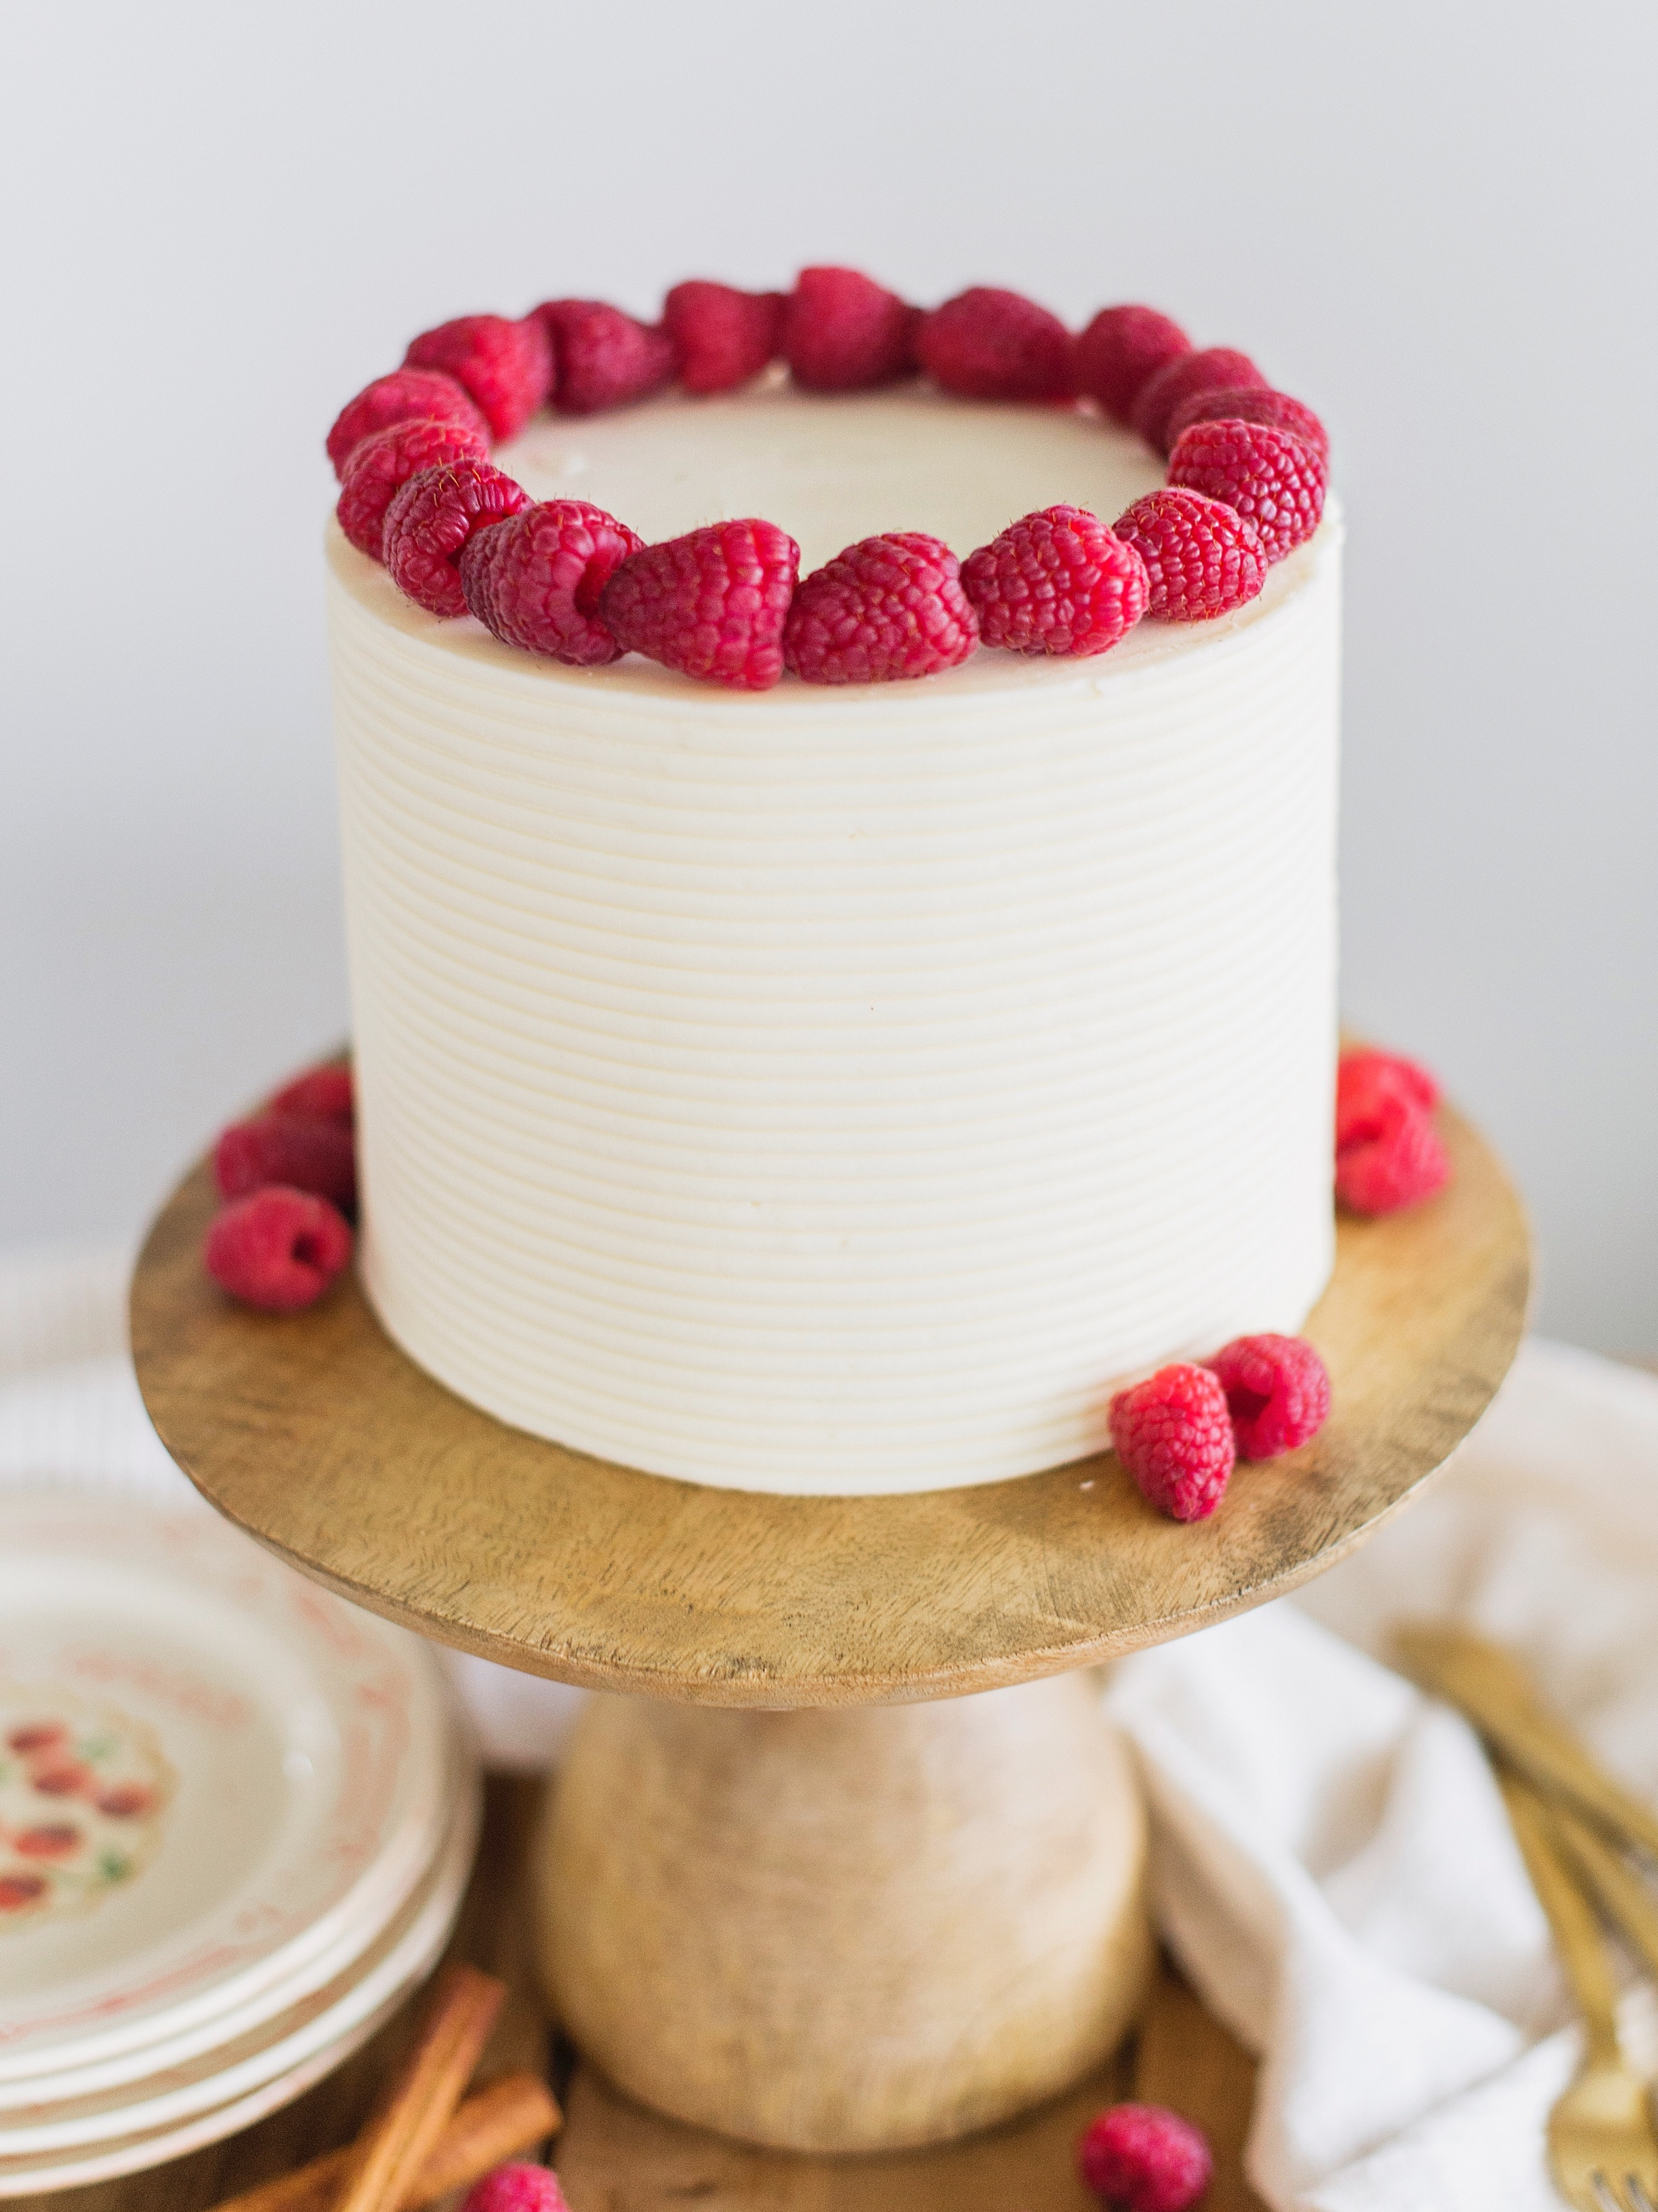 chai white chocolate raspberry cake #cakebycourtney #chaicake #whitechocolate #raspberry #chaicakeeasy #bestbuttercream